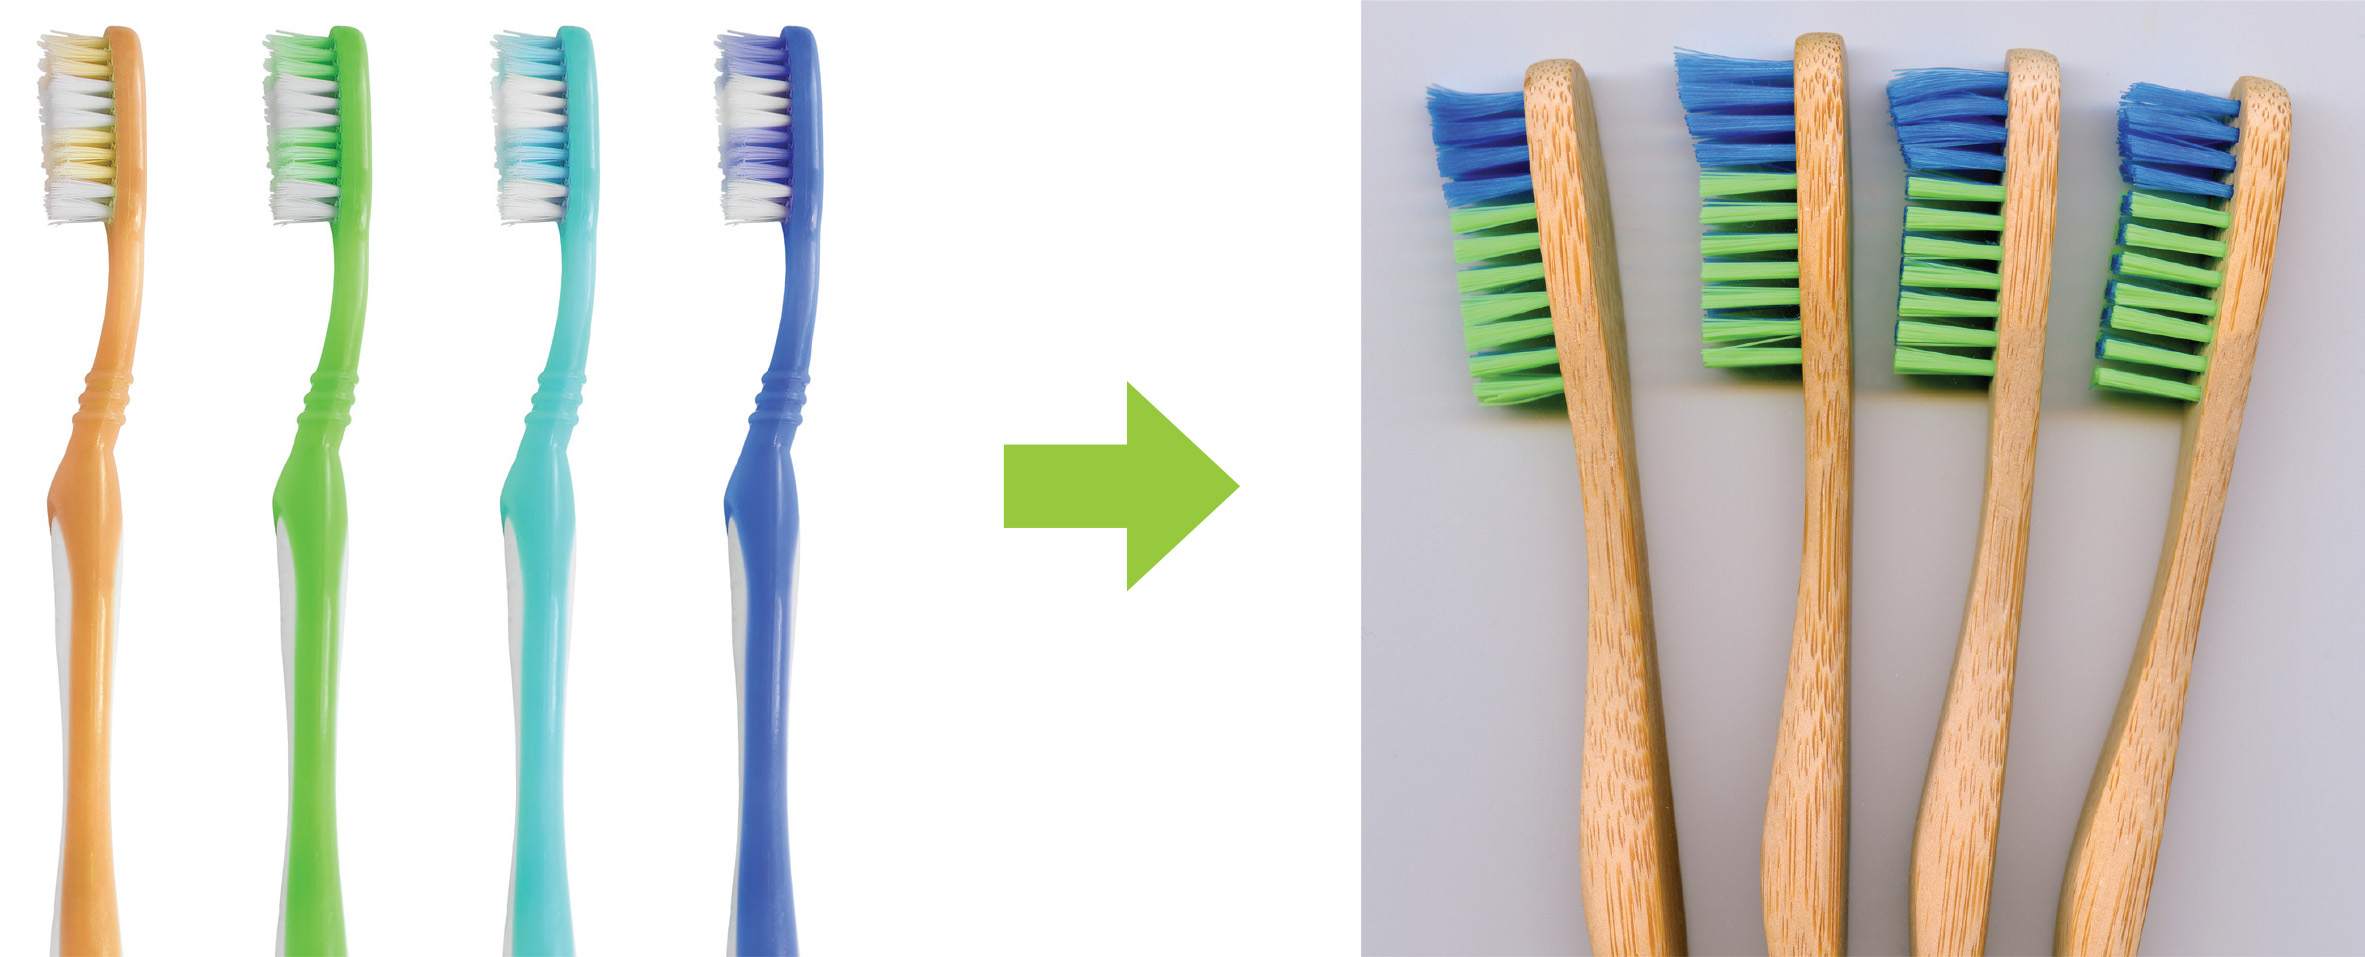 disposable plastic - toothbrushes